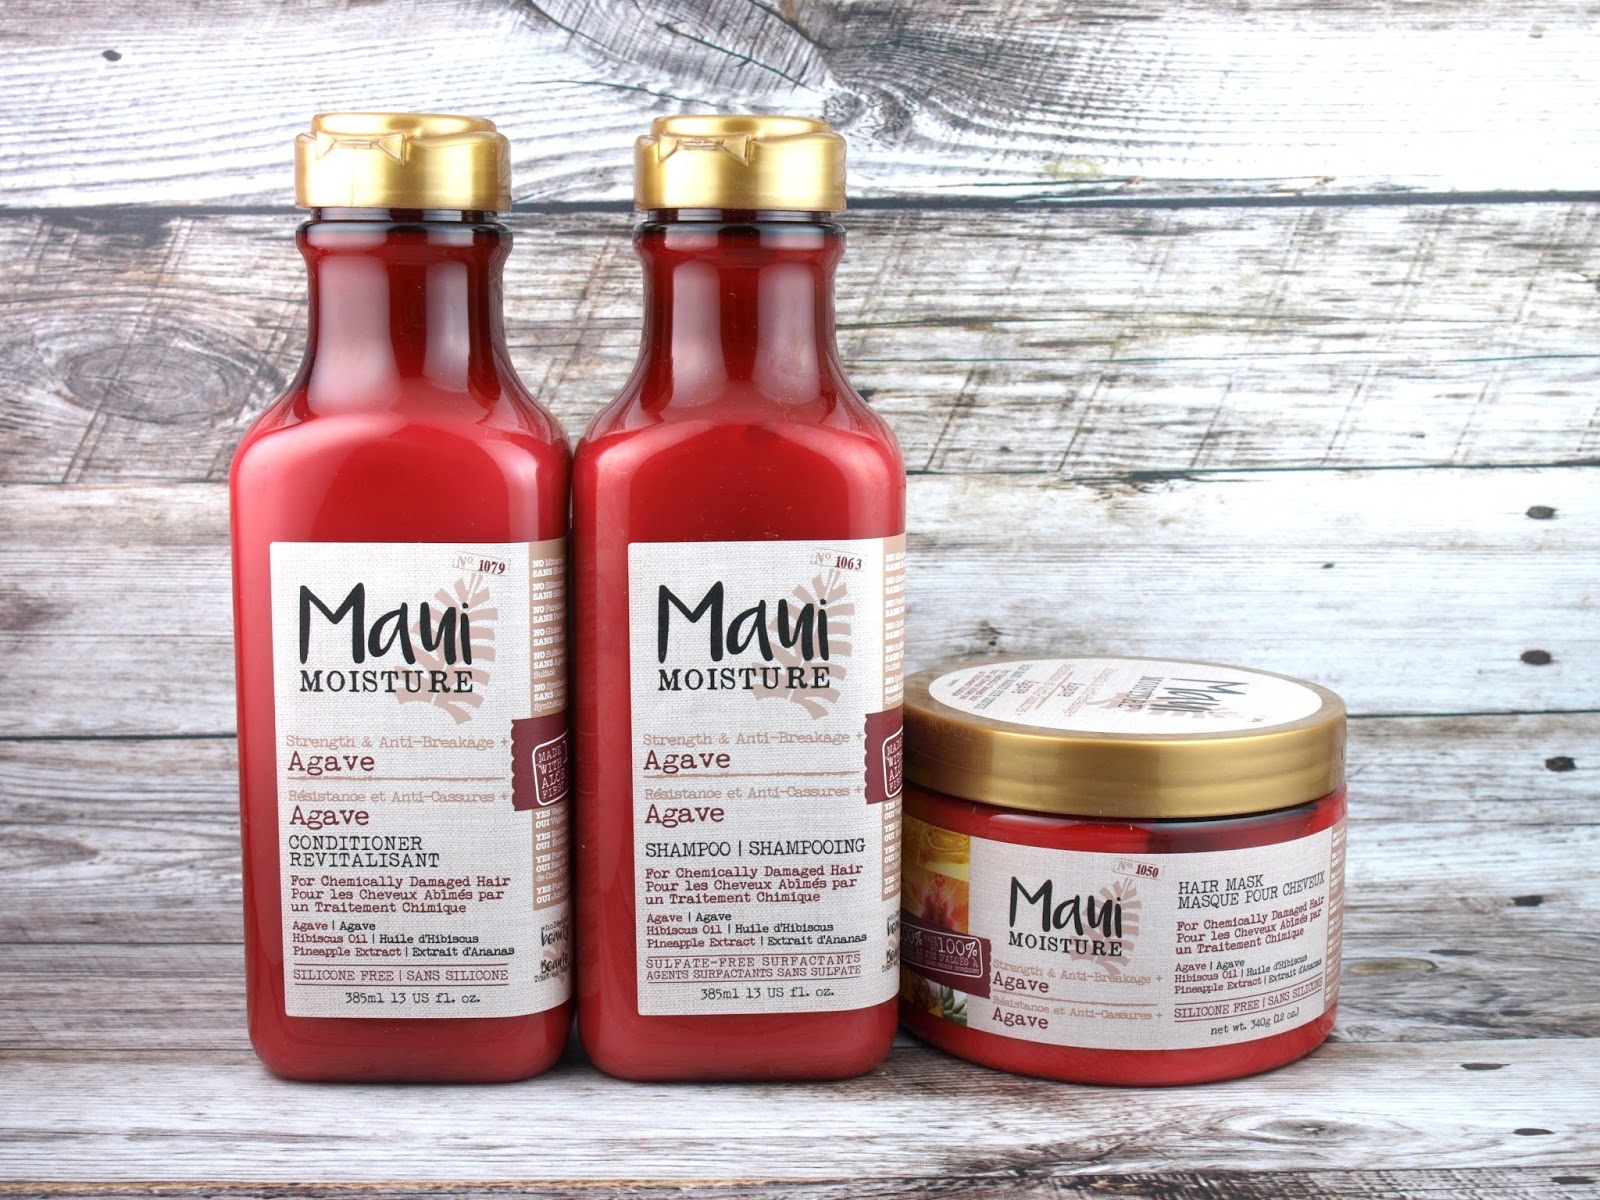 Maui Moisture Hair Care | Strength & Anti-Breakage Agave Collection: Review